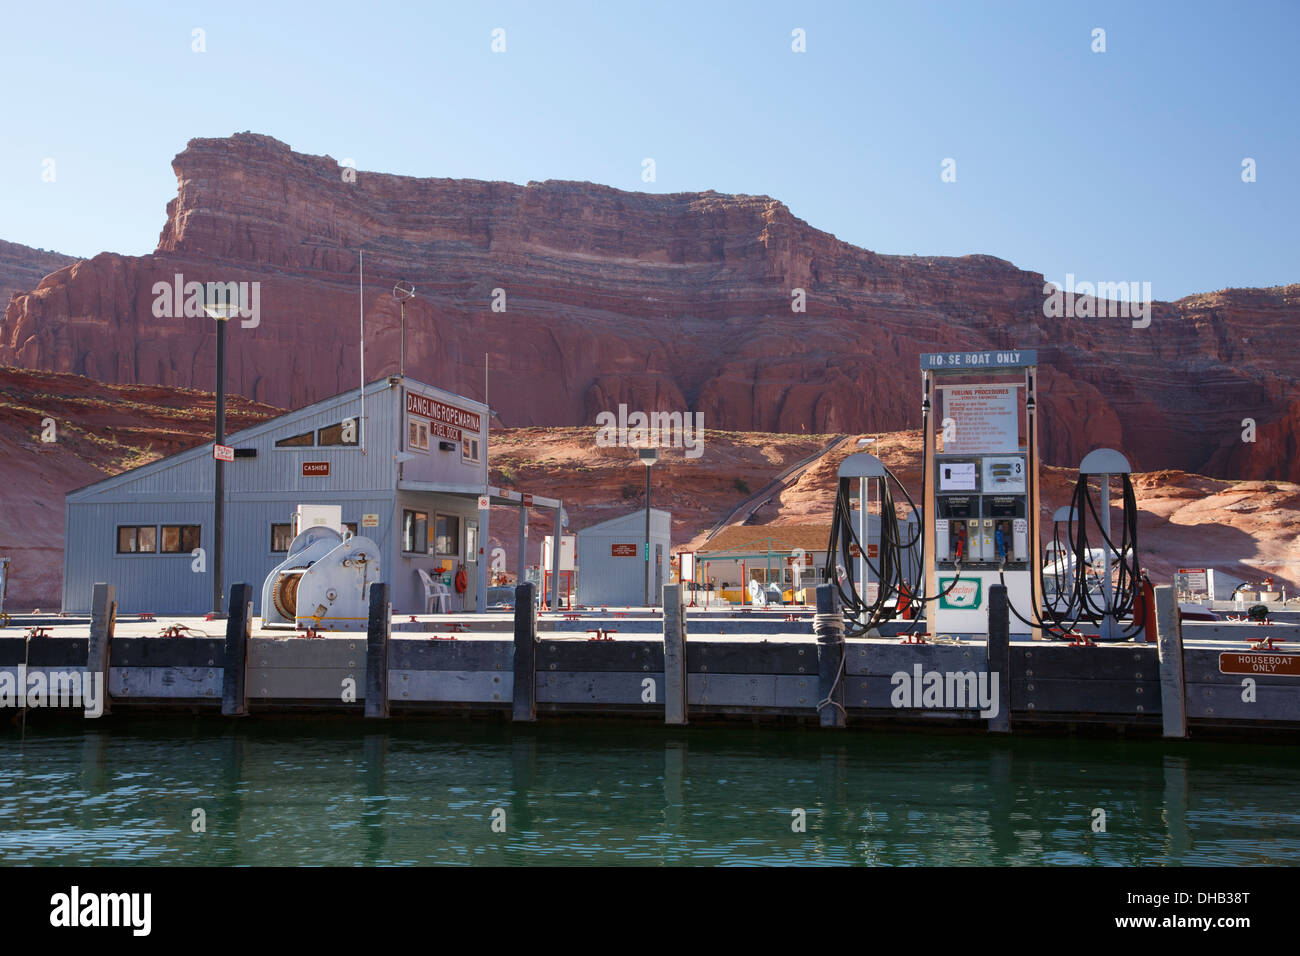 Marina cuerda colgando, el Lago Powell, Glen Canyon National Recreation Area, Page, Arizona. Imagen De Stock